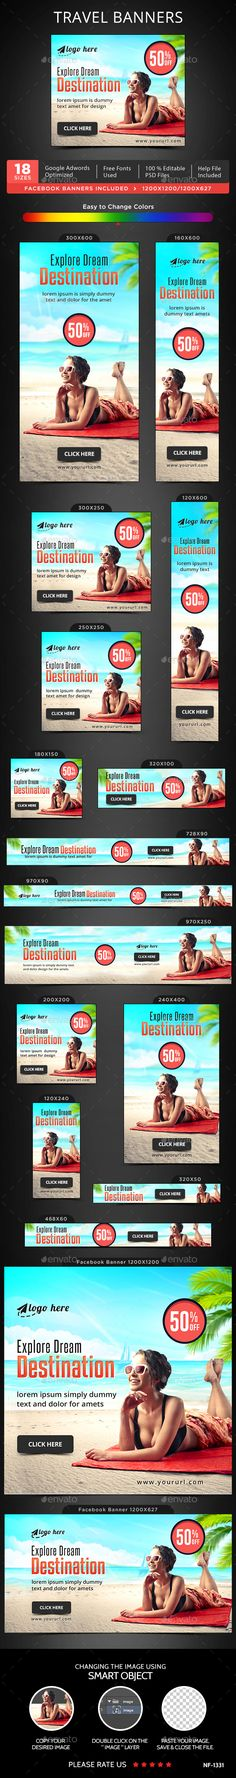 Travel Banners — Photoshop PSD #banner pack #travels • Available here → https://graphicriver.net/item/travel-banners/16431367?ref=pxcr